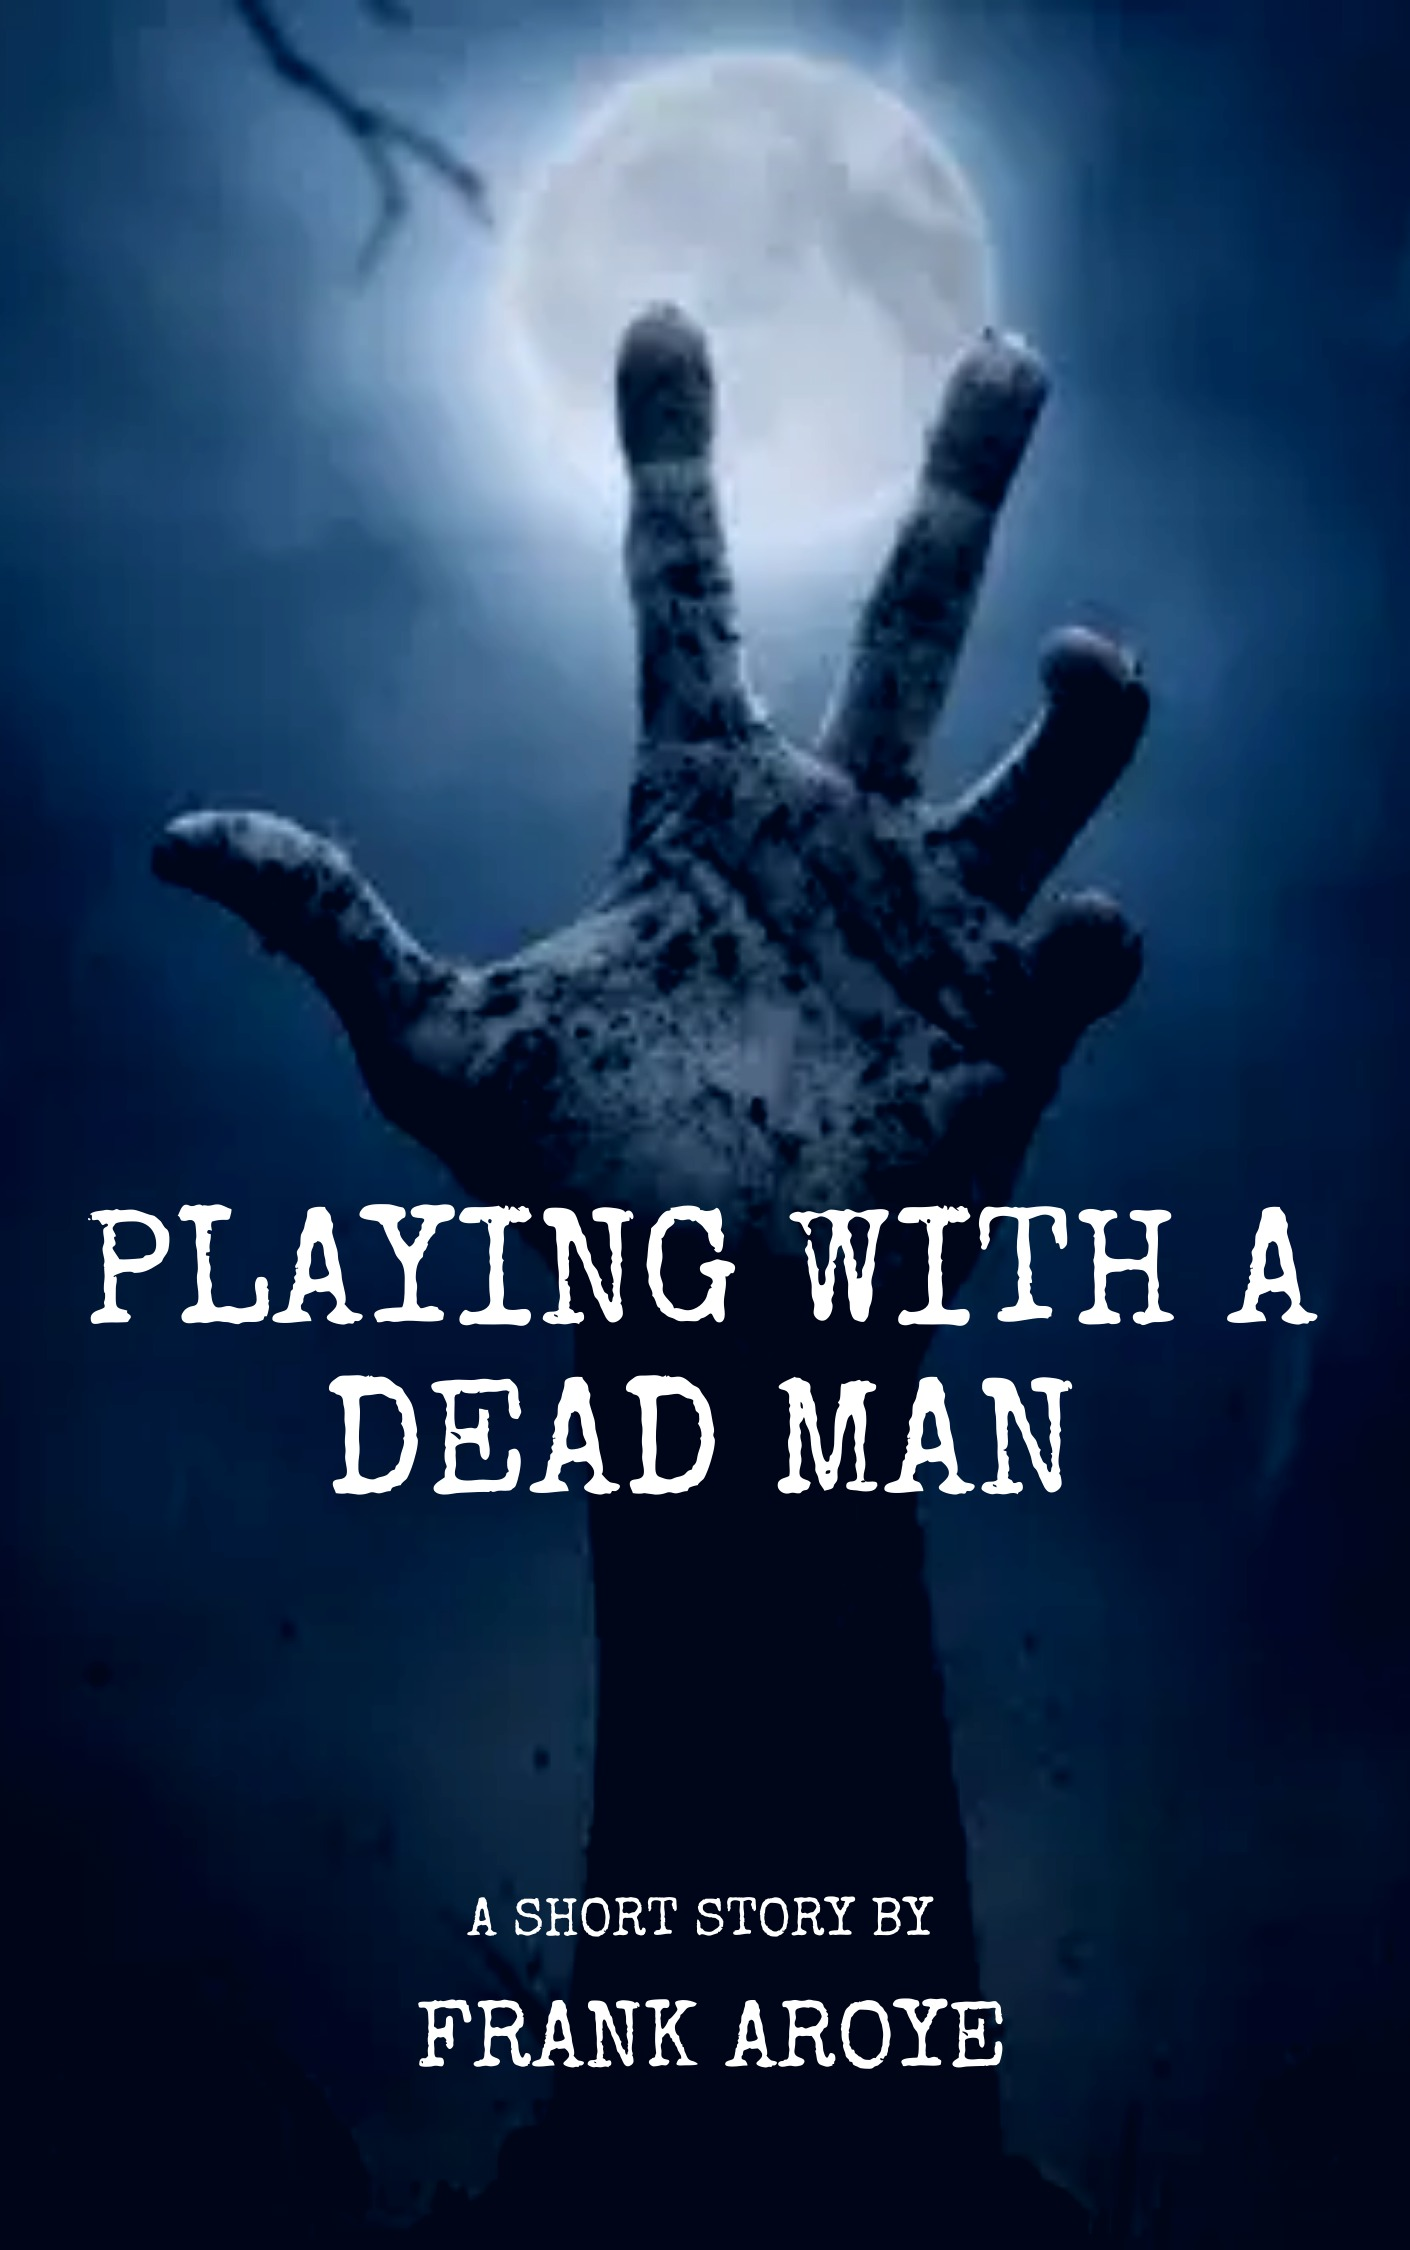 Playing with a Dead Man